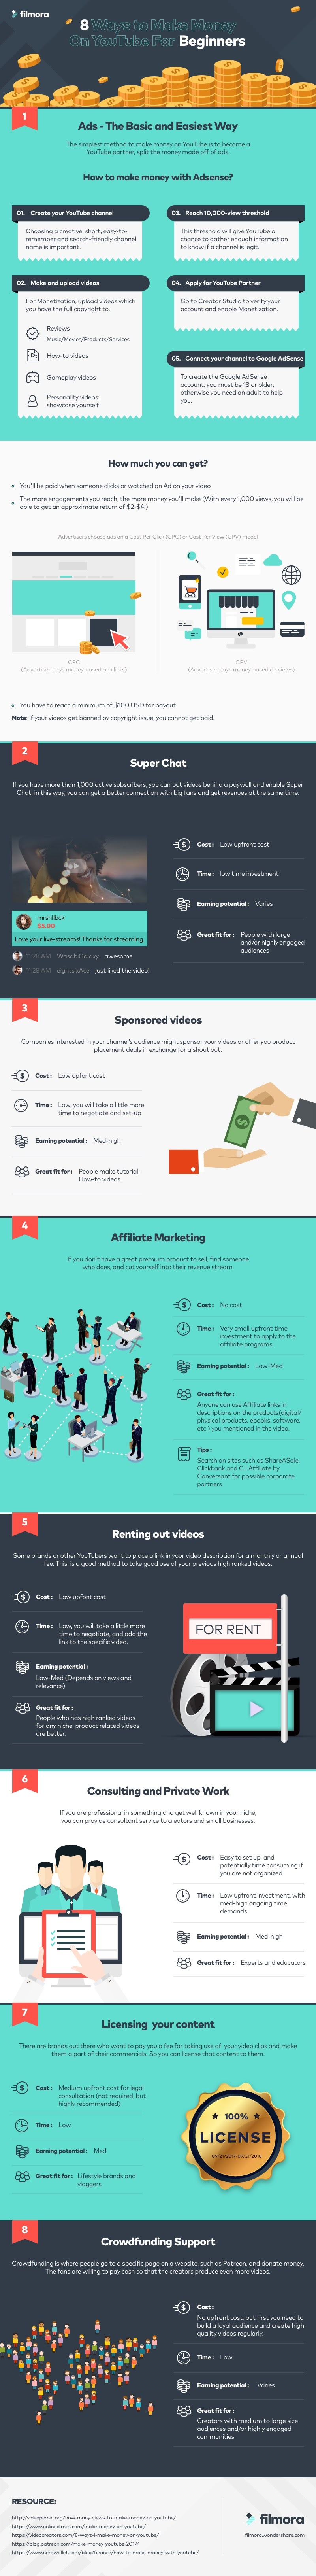 8 Easiest Ways for Beginners to Make Money with #YouTube - #infographic